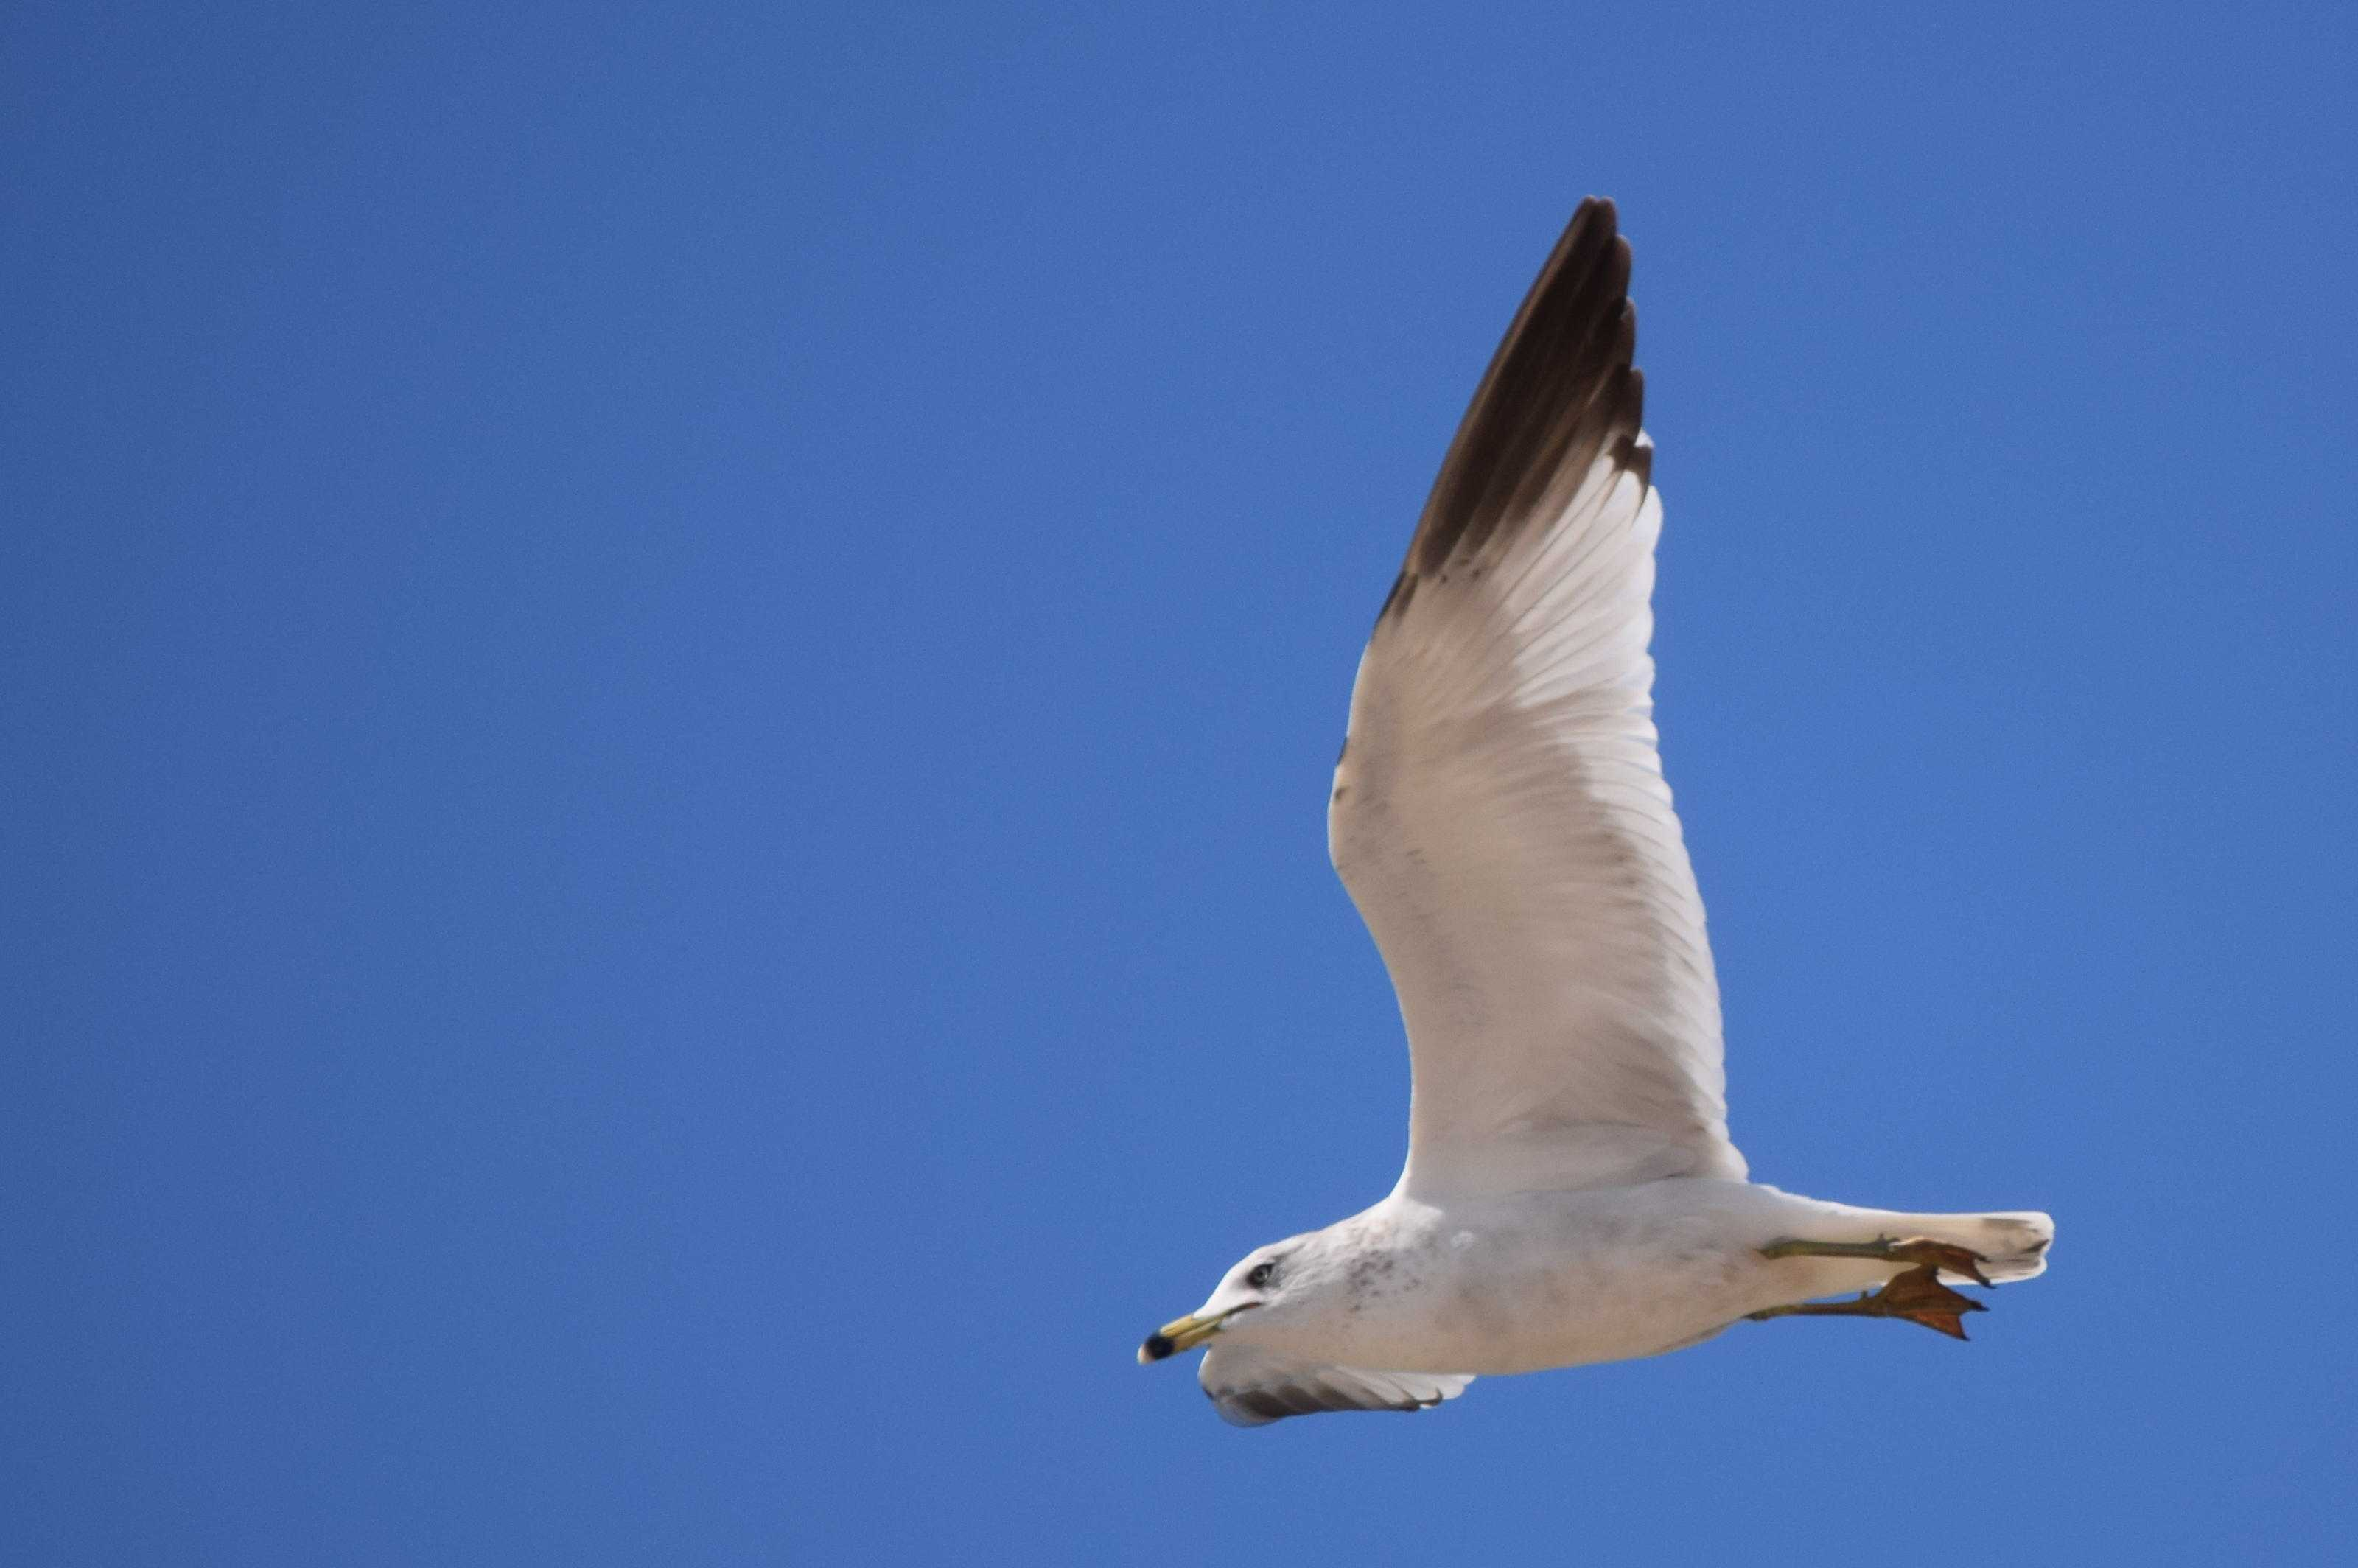 Seagulls, among other birds, hold a growing presence on Seminole's campus.